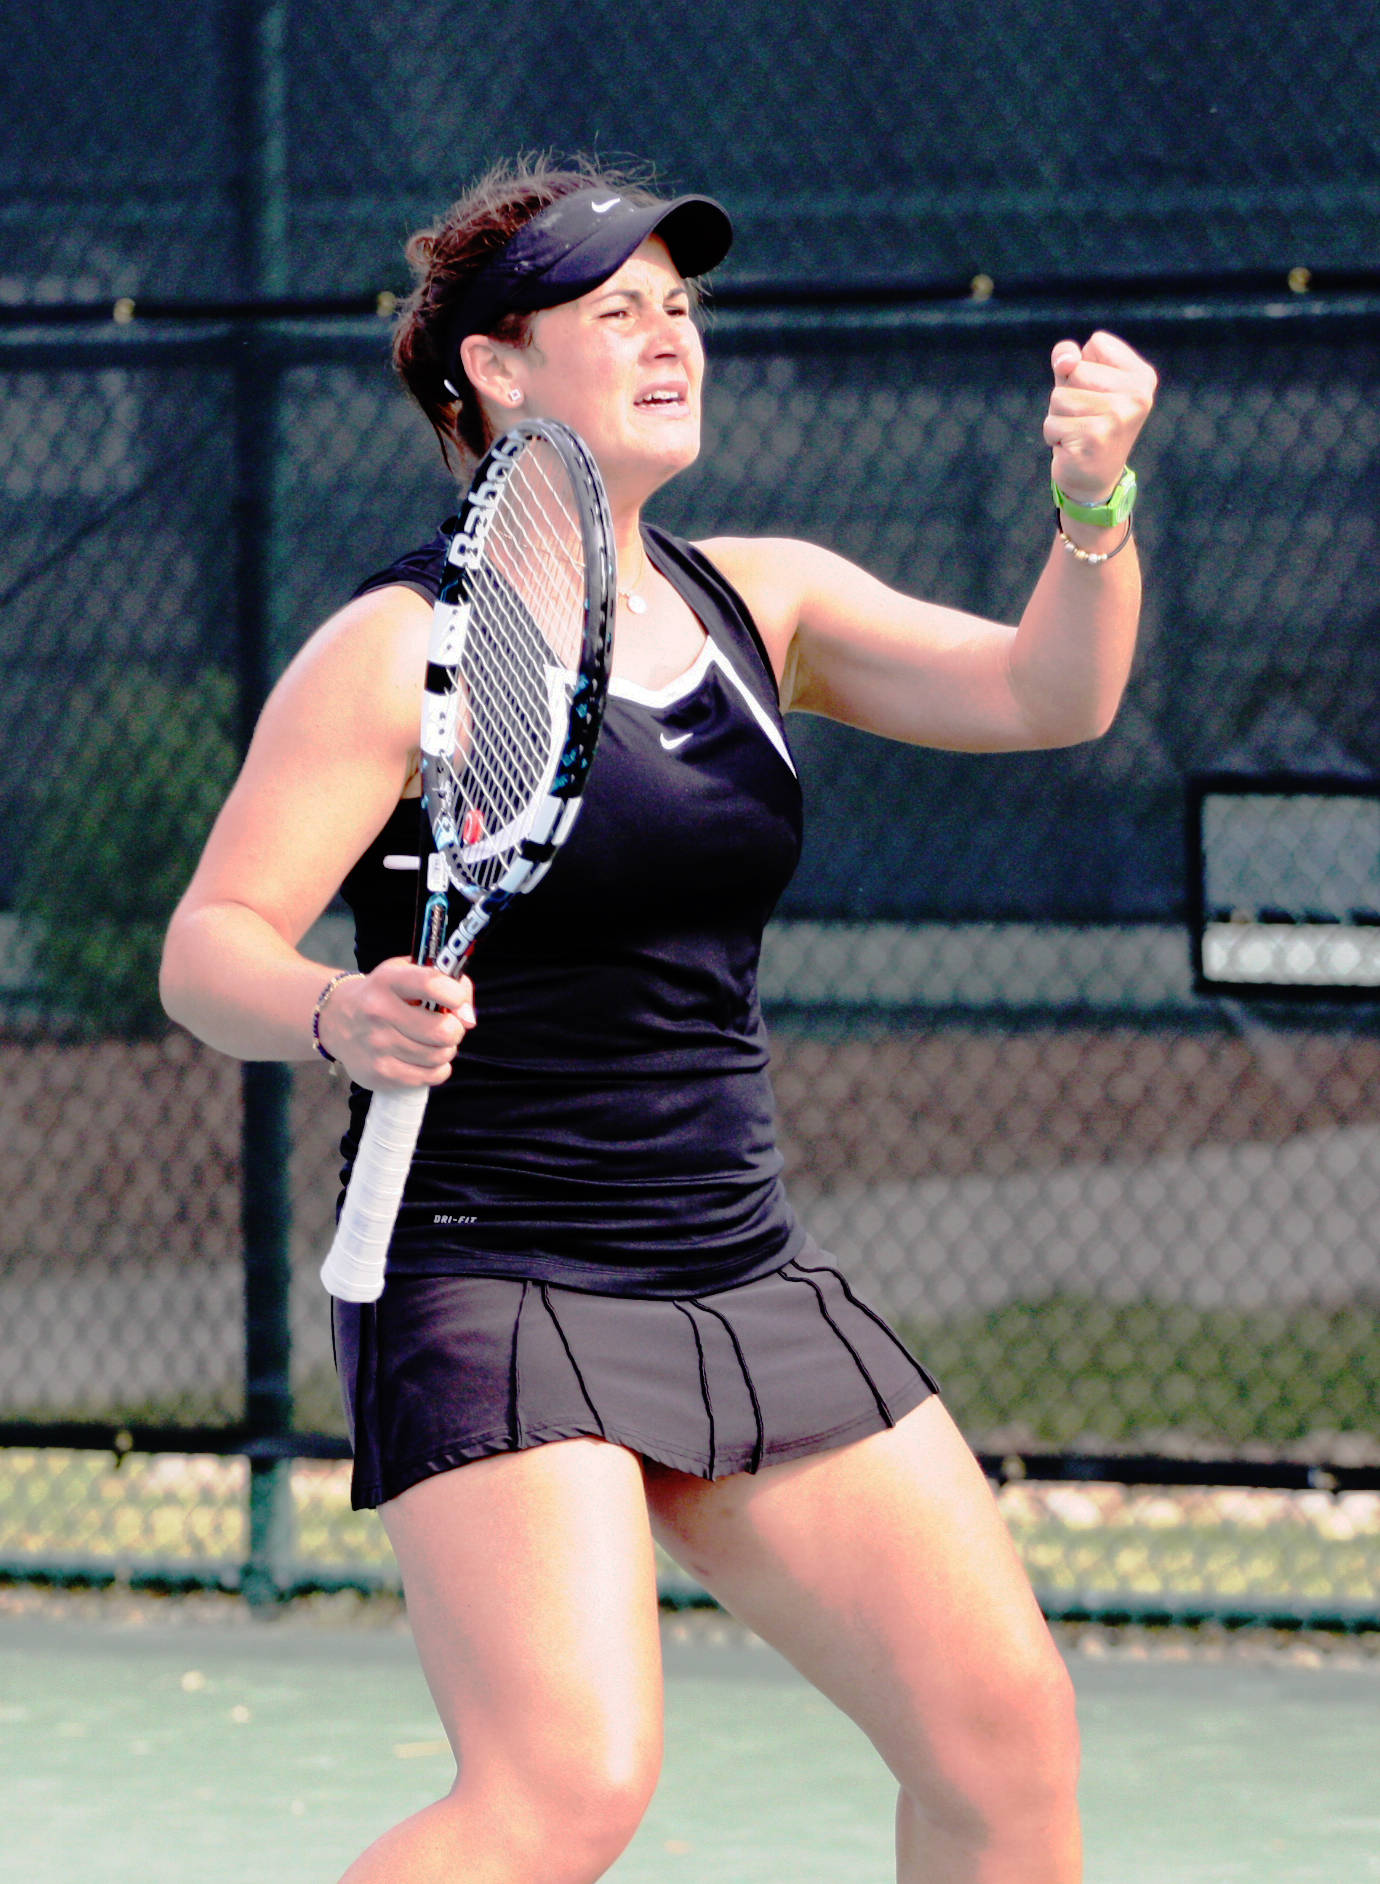 Francesca Segarelli pumps her fist after she clinched the match against Clemson.